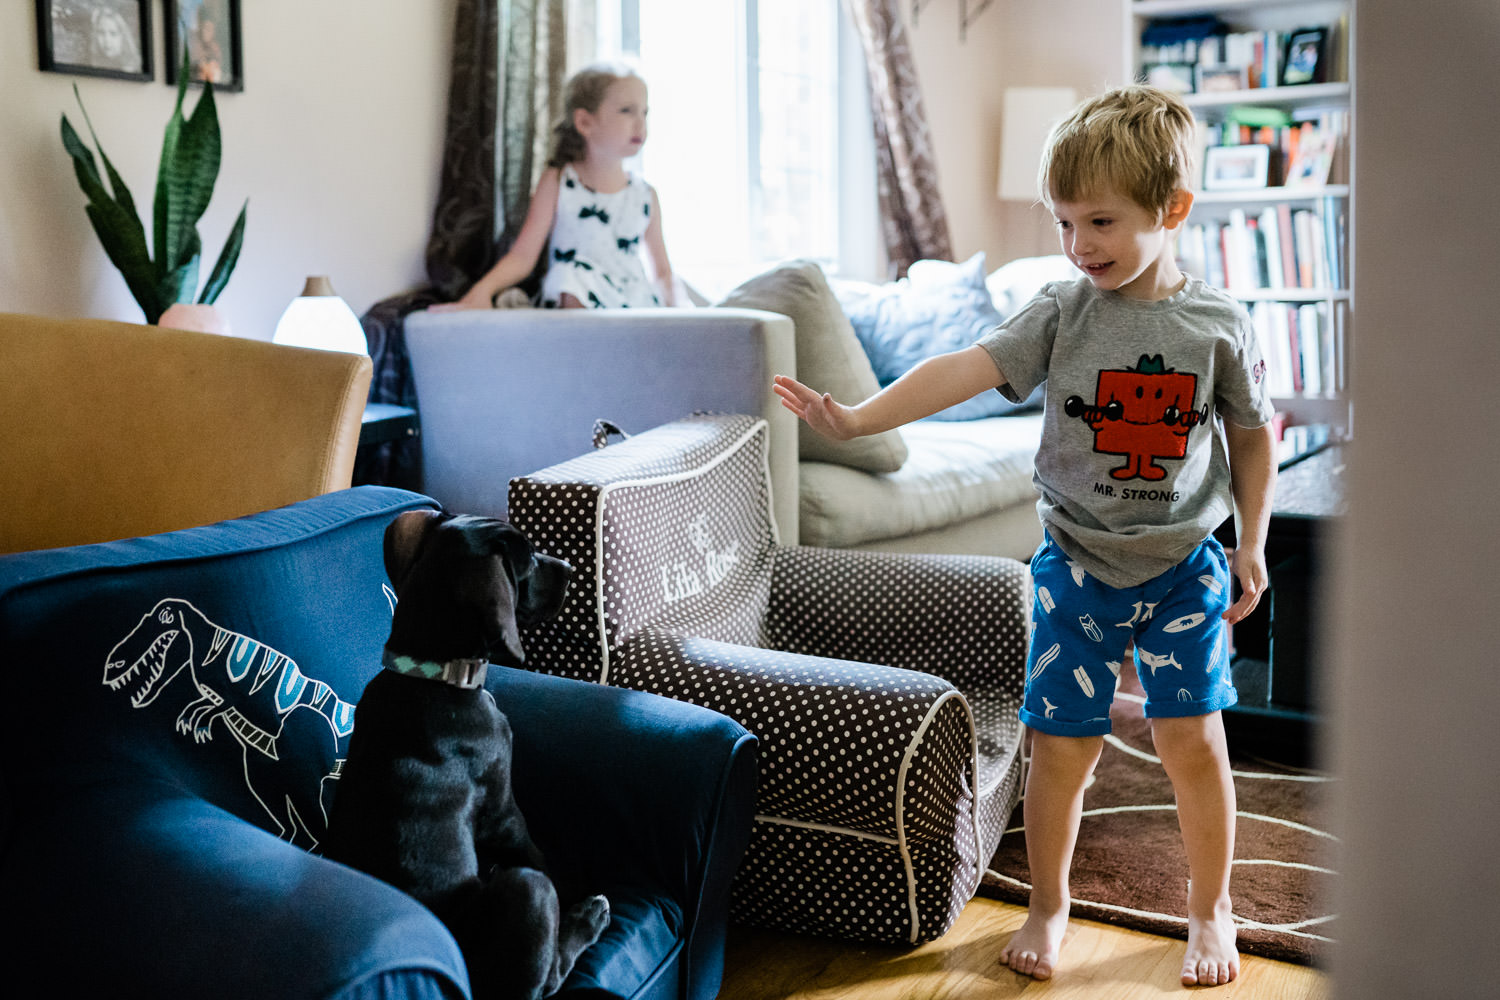 A little boy tells his dog to stop.